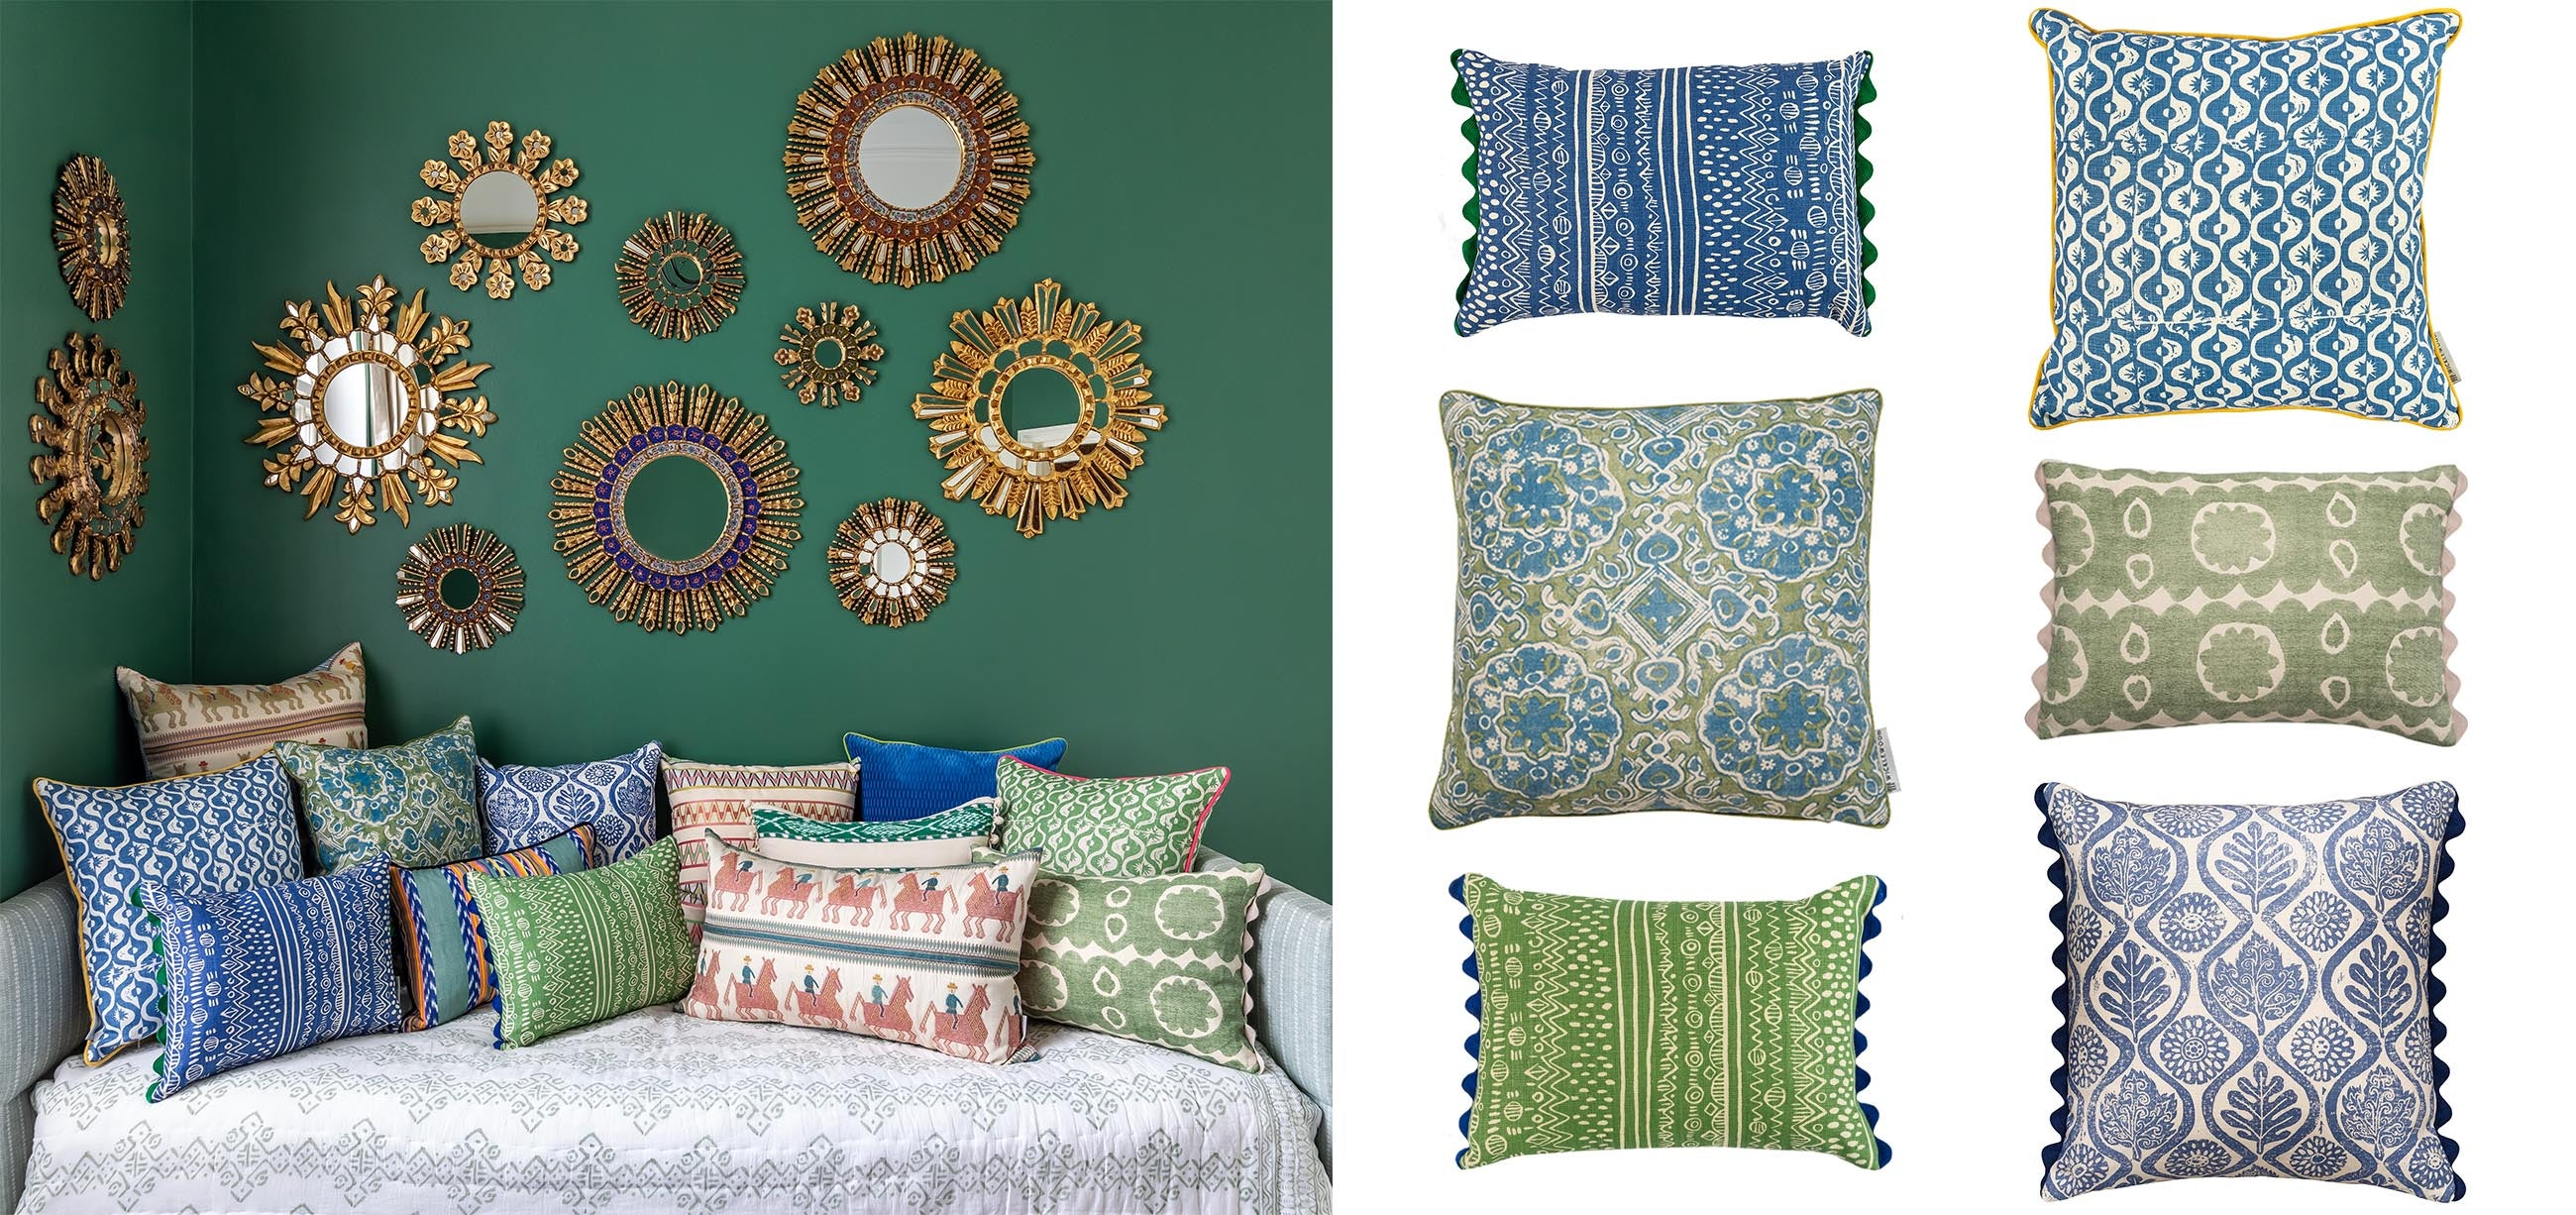 Wicklewood brightly coloured patterned square and oblong cushions in blue and green